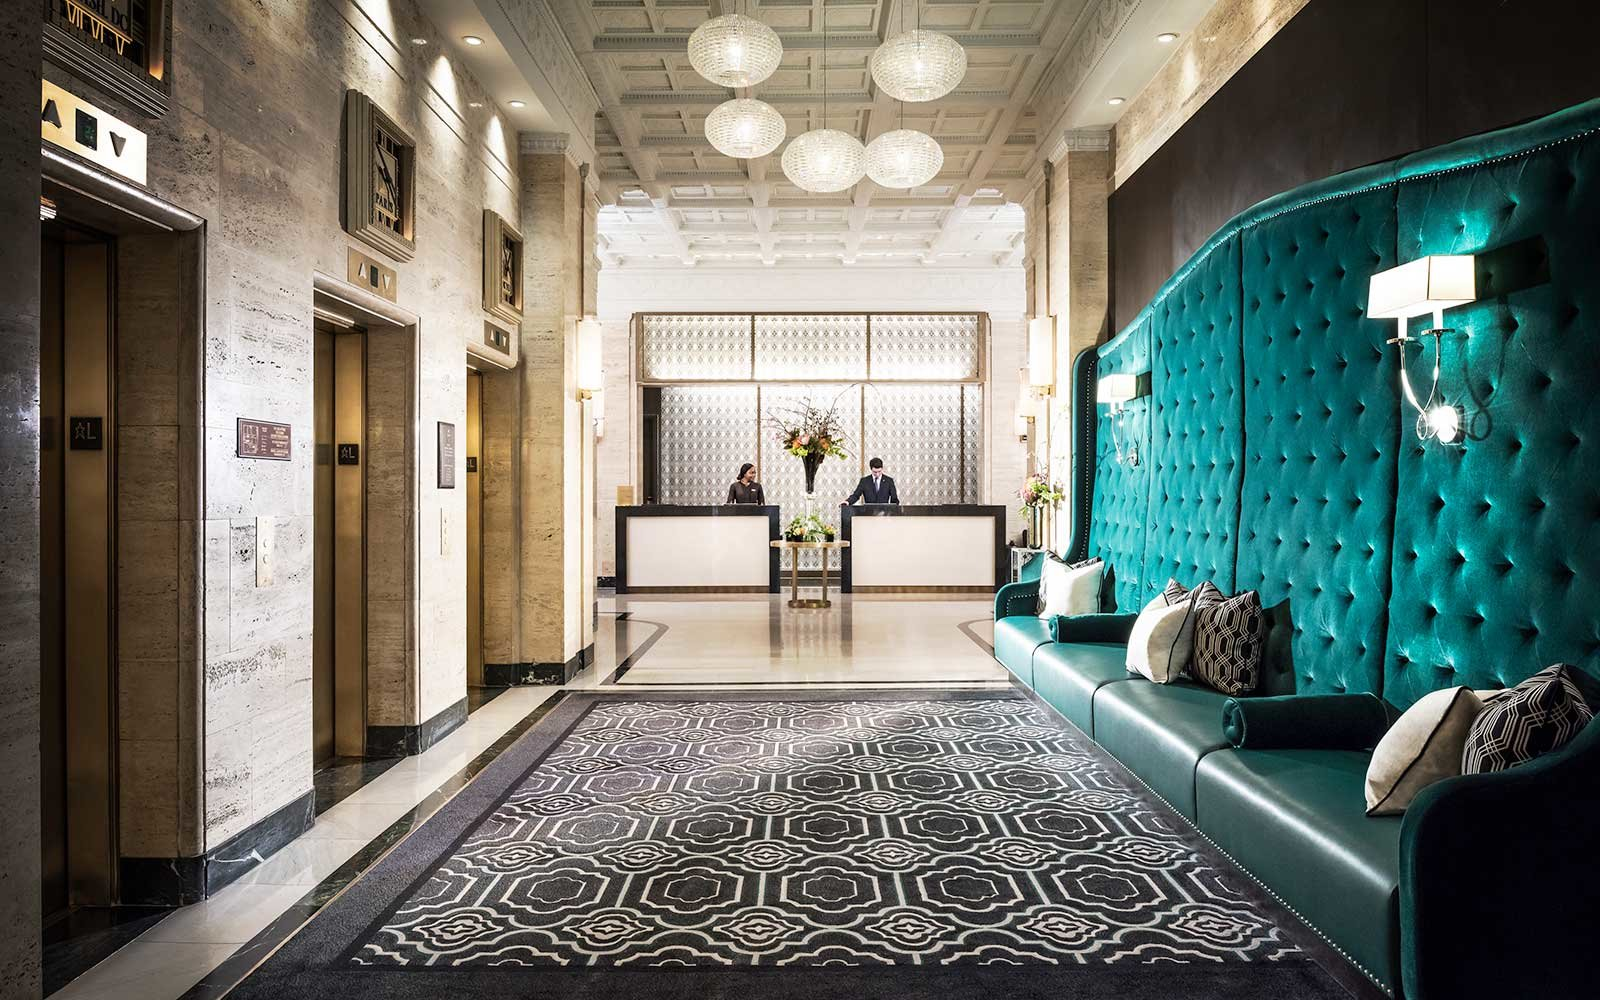 5. Sofitel Washington D.C. Lafayette Square